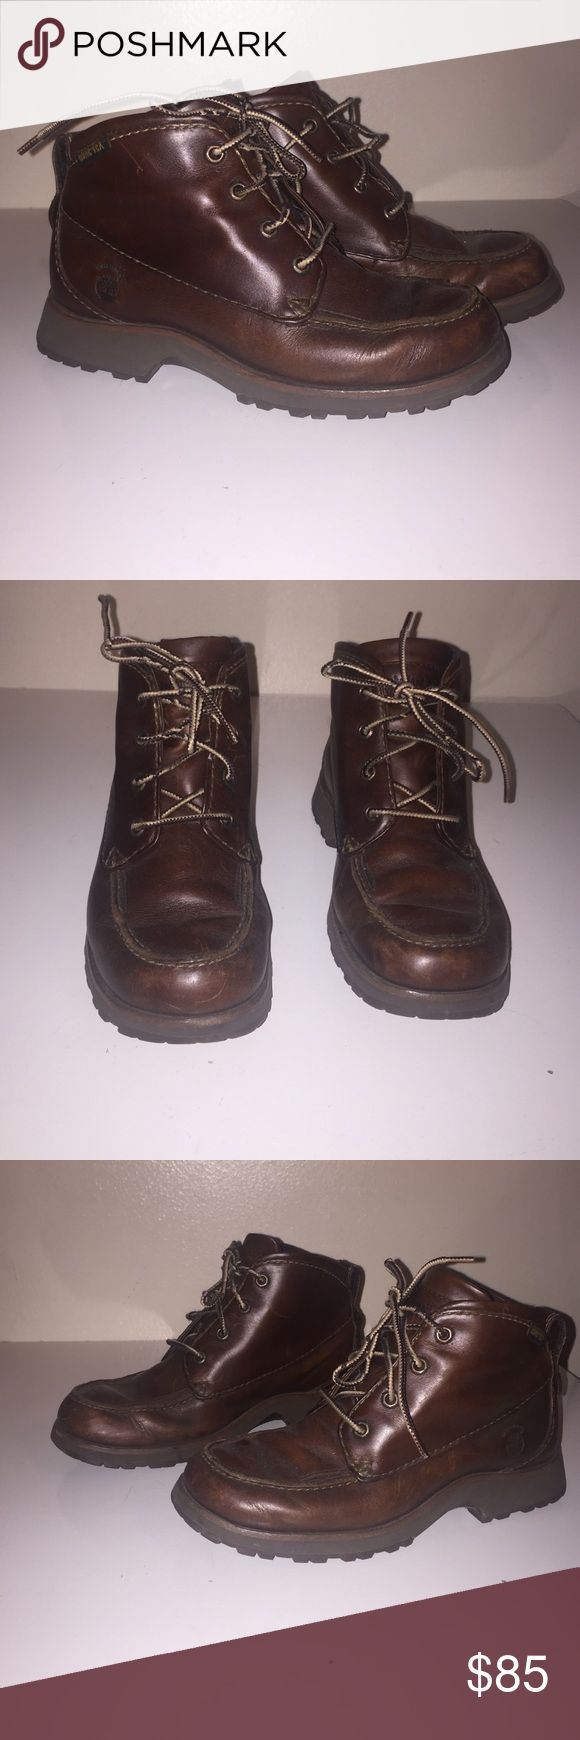 Timberland Gore-Tex Waterproof Boots Timberland Gore-Tex Waterproof Boots. These have been worn but they are in excellent condition. Timberland Shoes